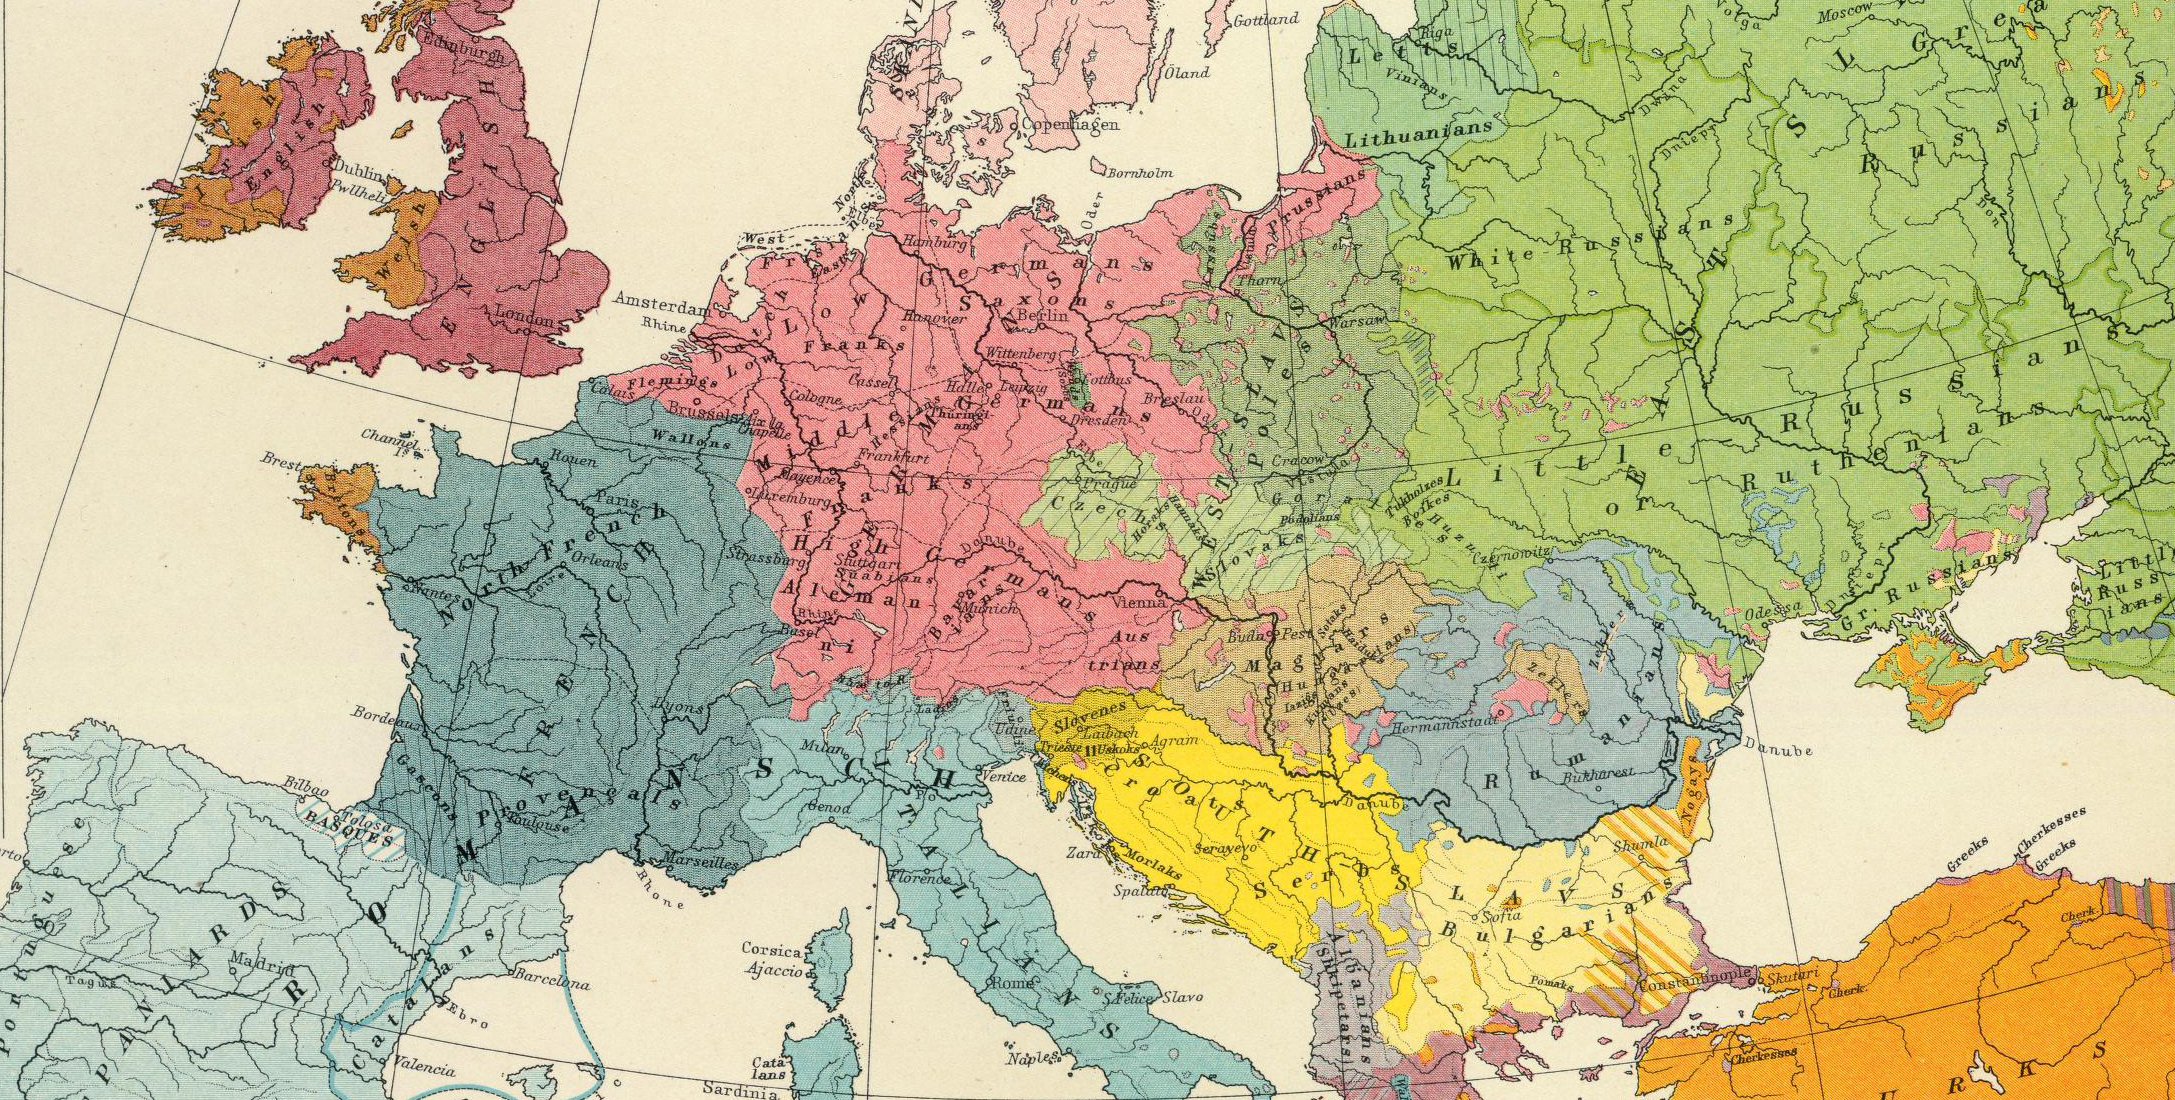 ethnographic maps, how to read ethnographic maps, historical maps of europe, heritage map, historical heritage, europe map